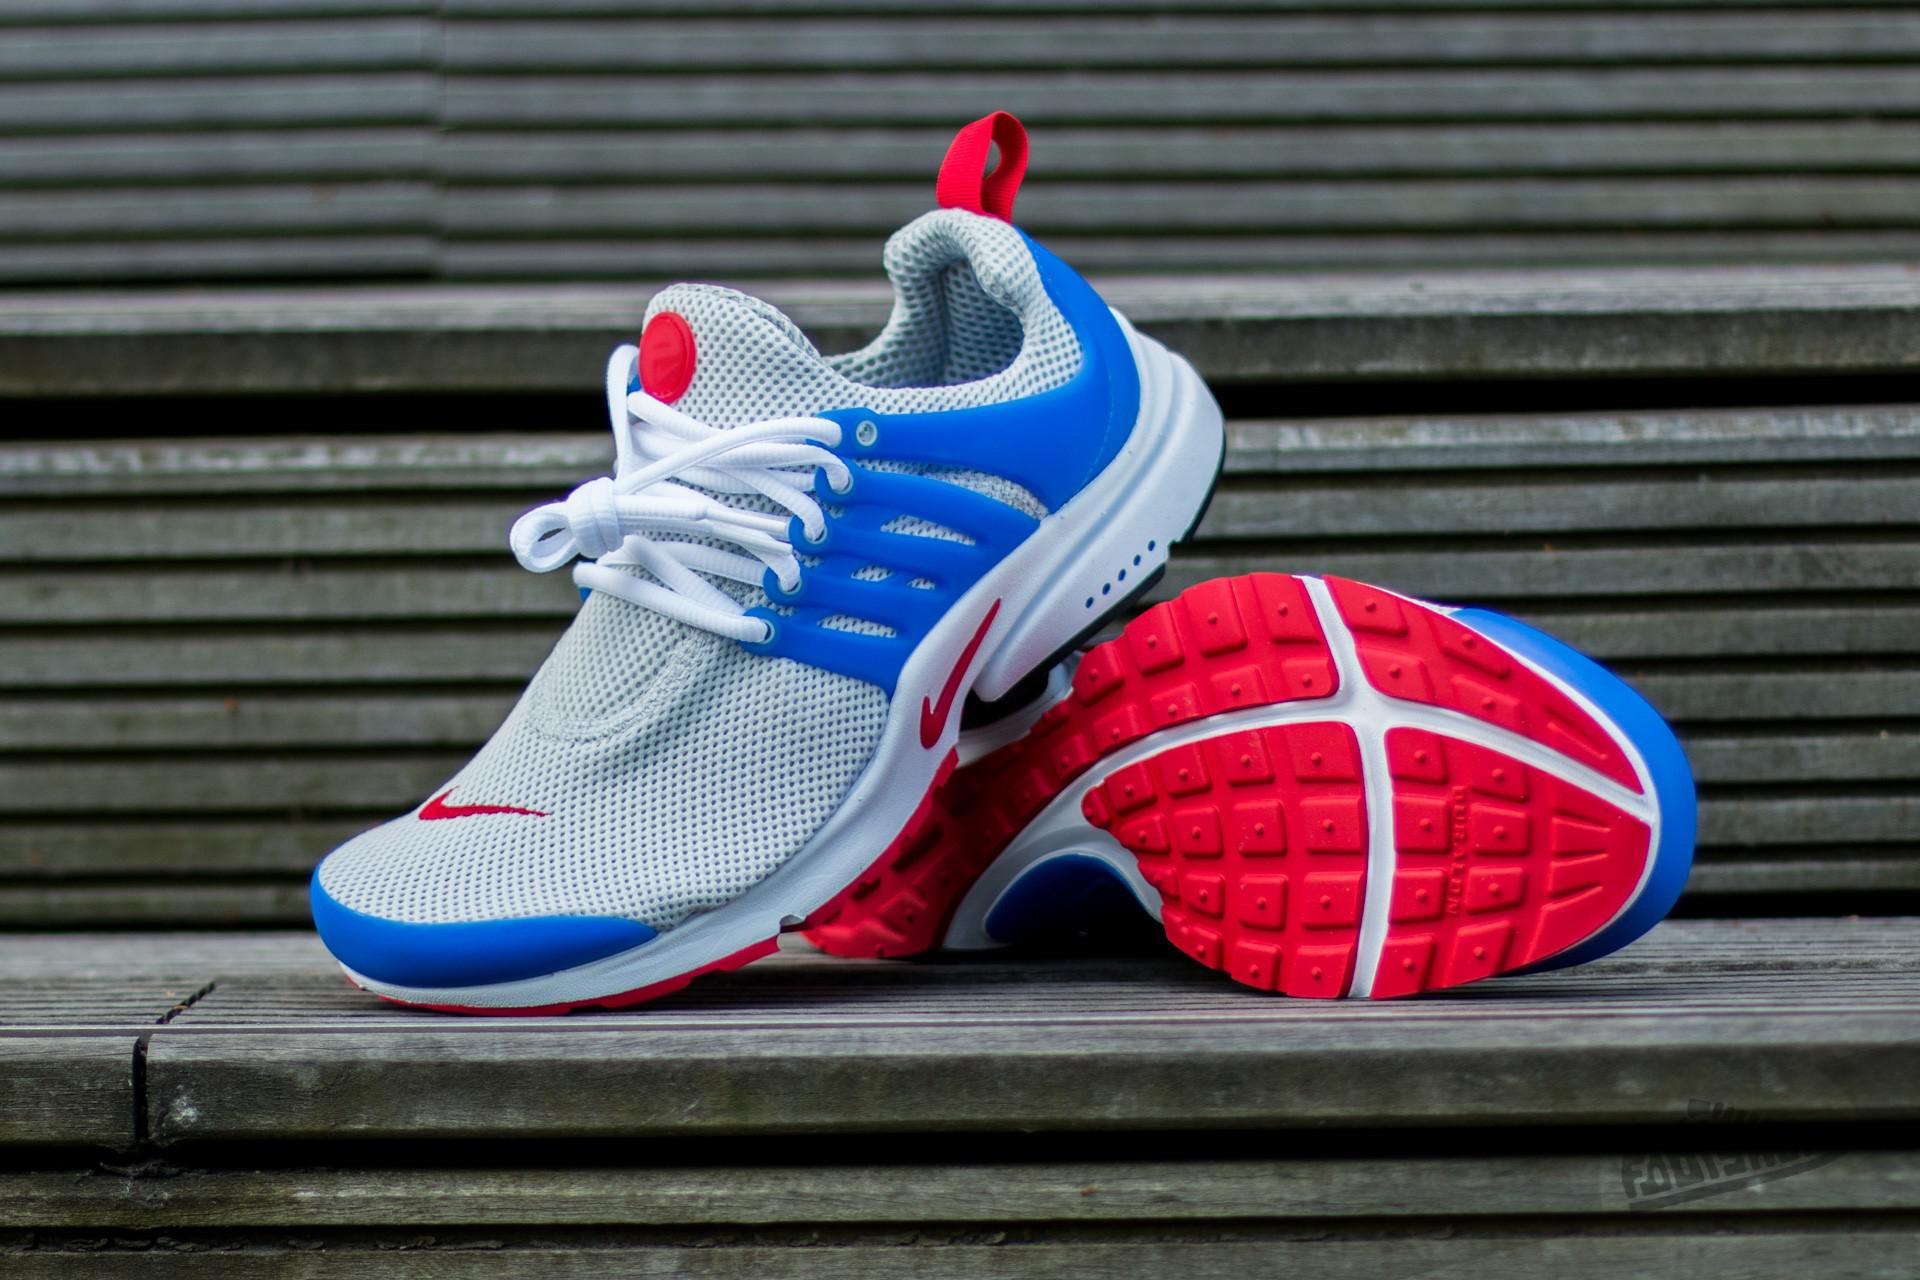 4f351abe762f Lyst - Nike Air Presto Essential Dusty Grey  University Red - Hyper ...